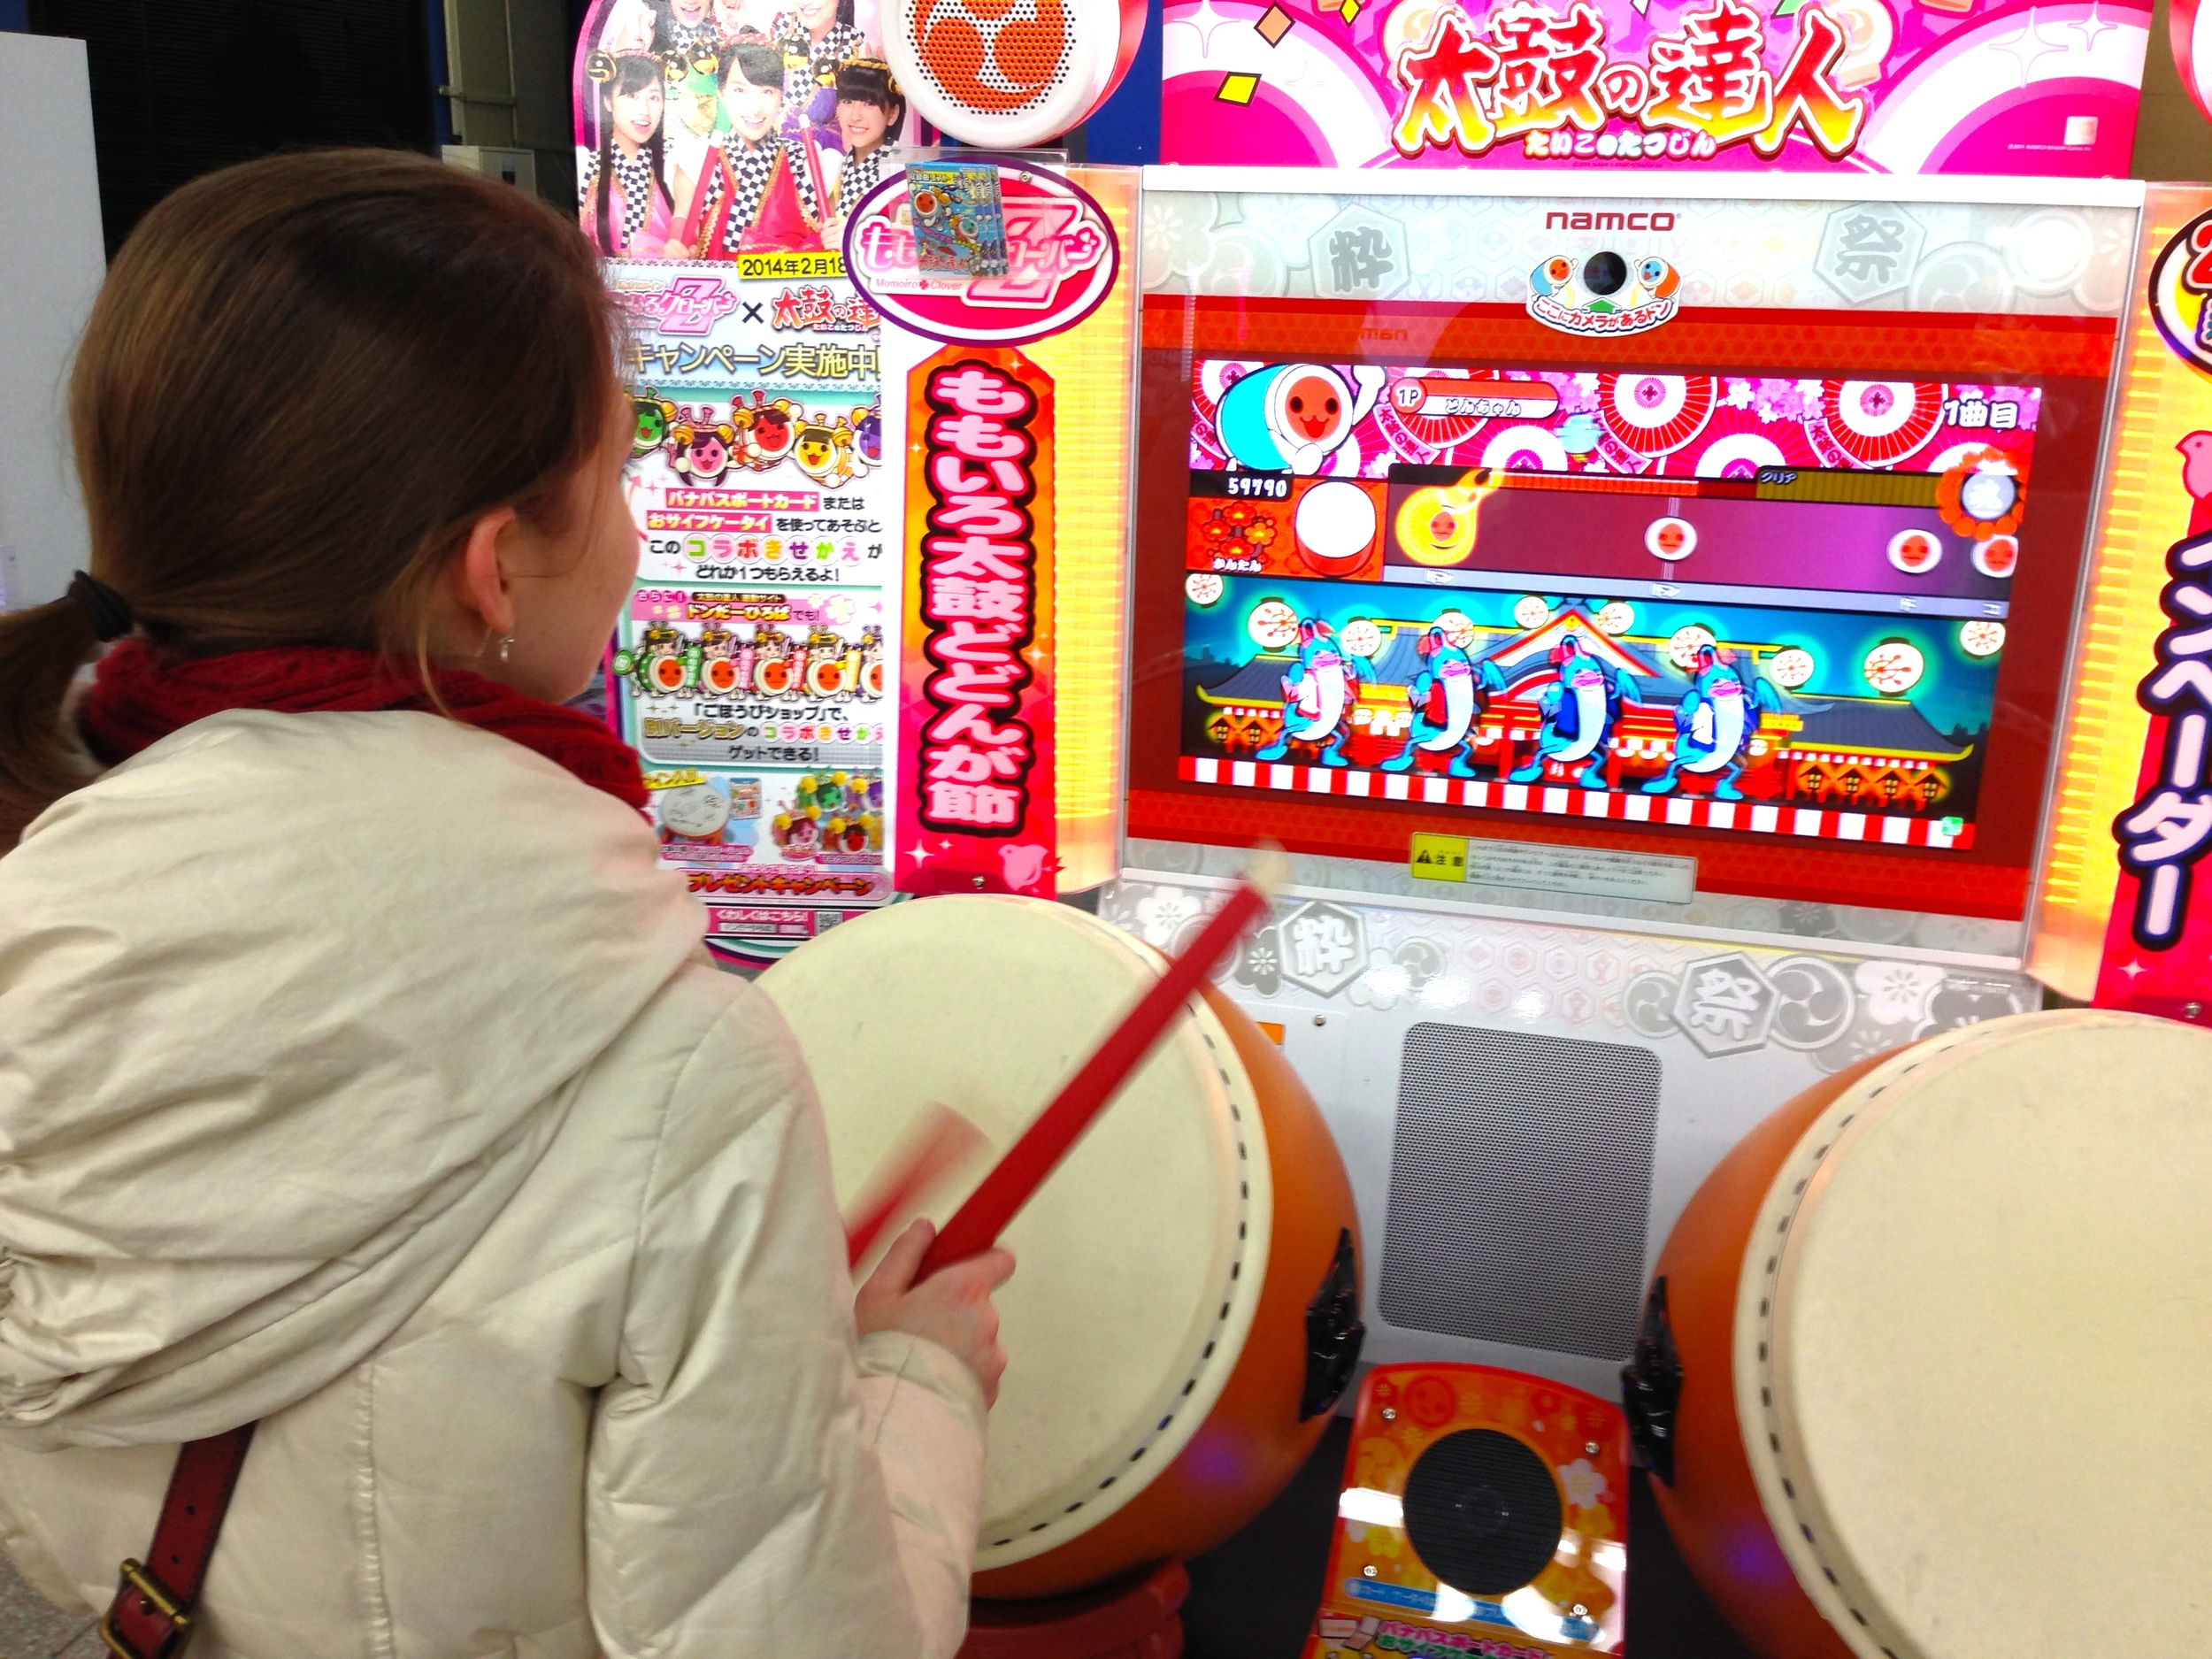 Playing taiko drum master in the arcade